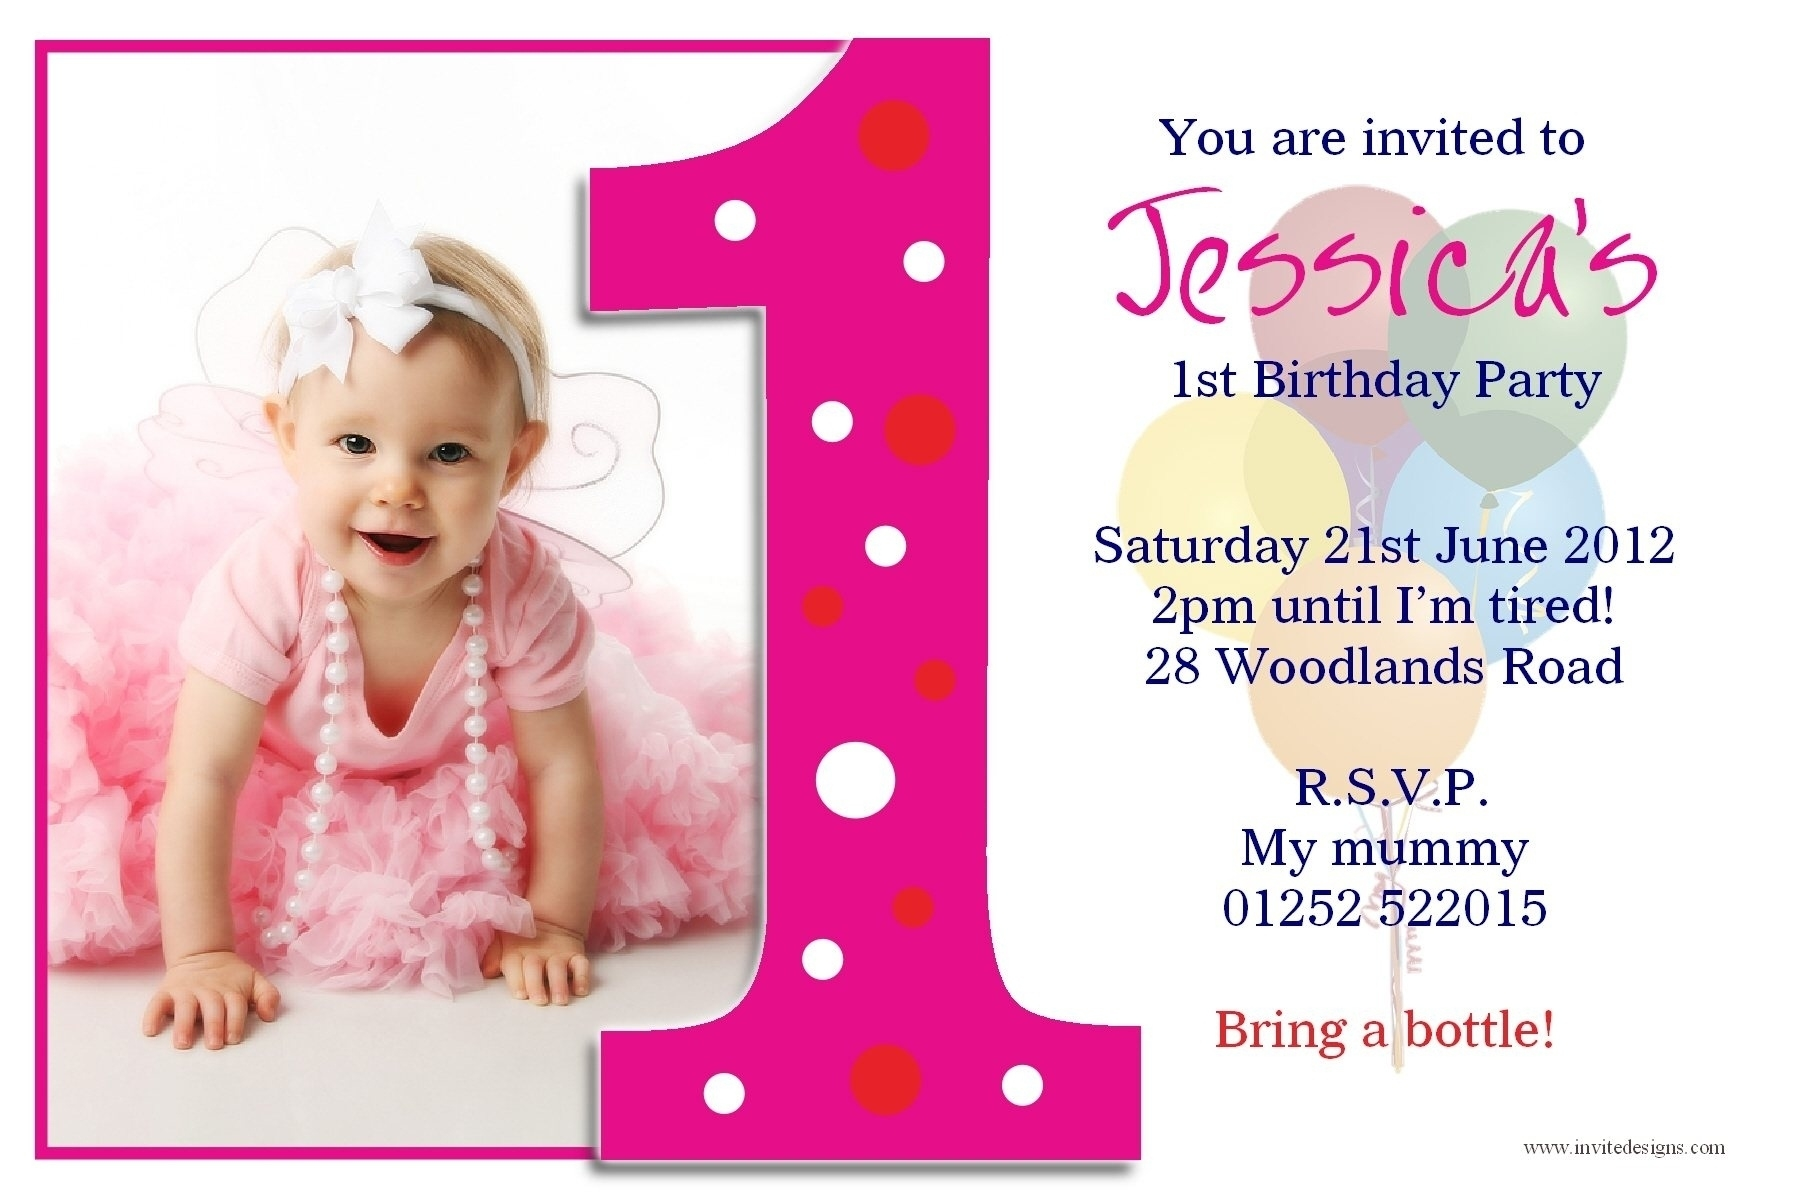 baby birthday invitation template ; baby-birthday-invitation-templates-new-1st-birthday-invitation-cards-templates-free-of-baby-birthday-invitation-templates